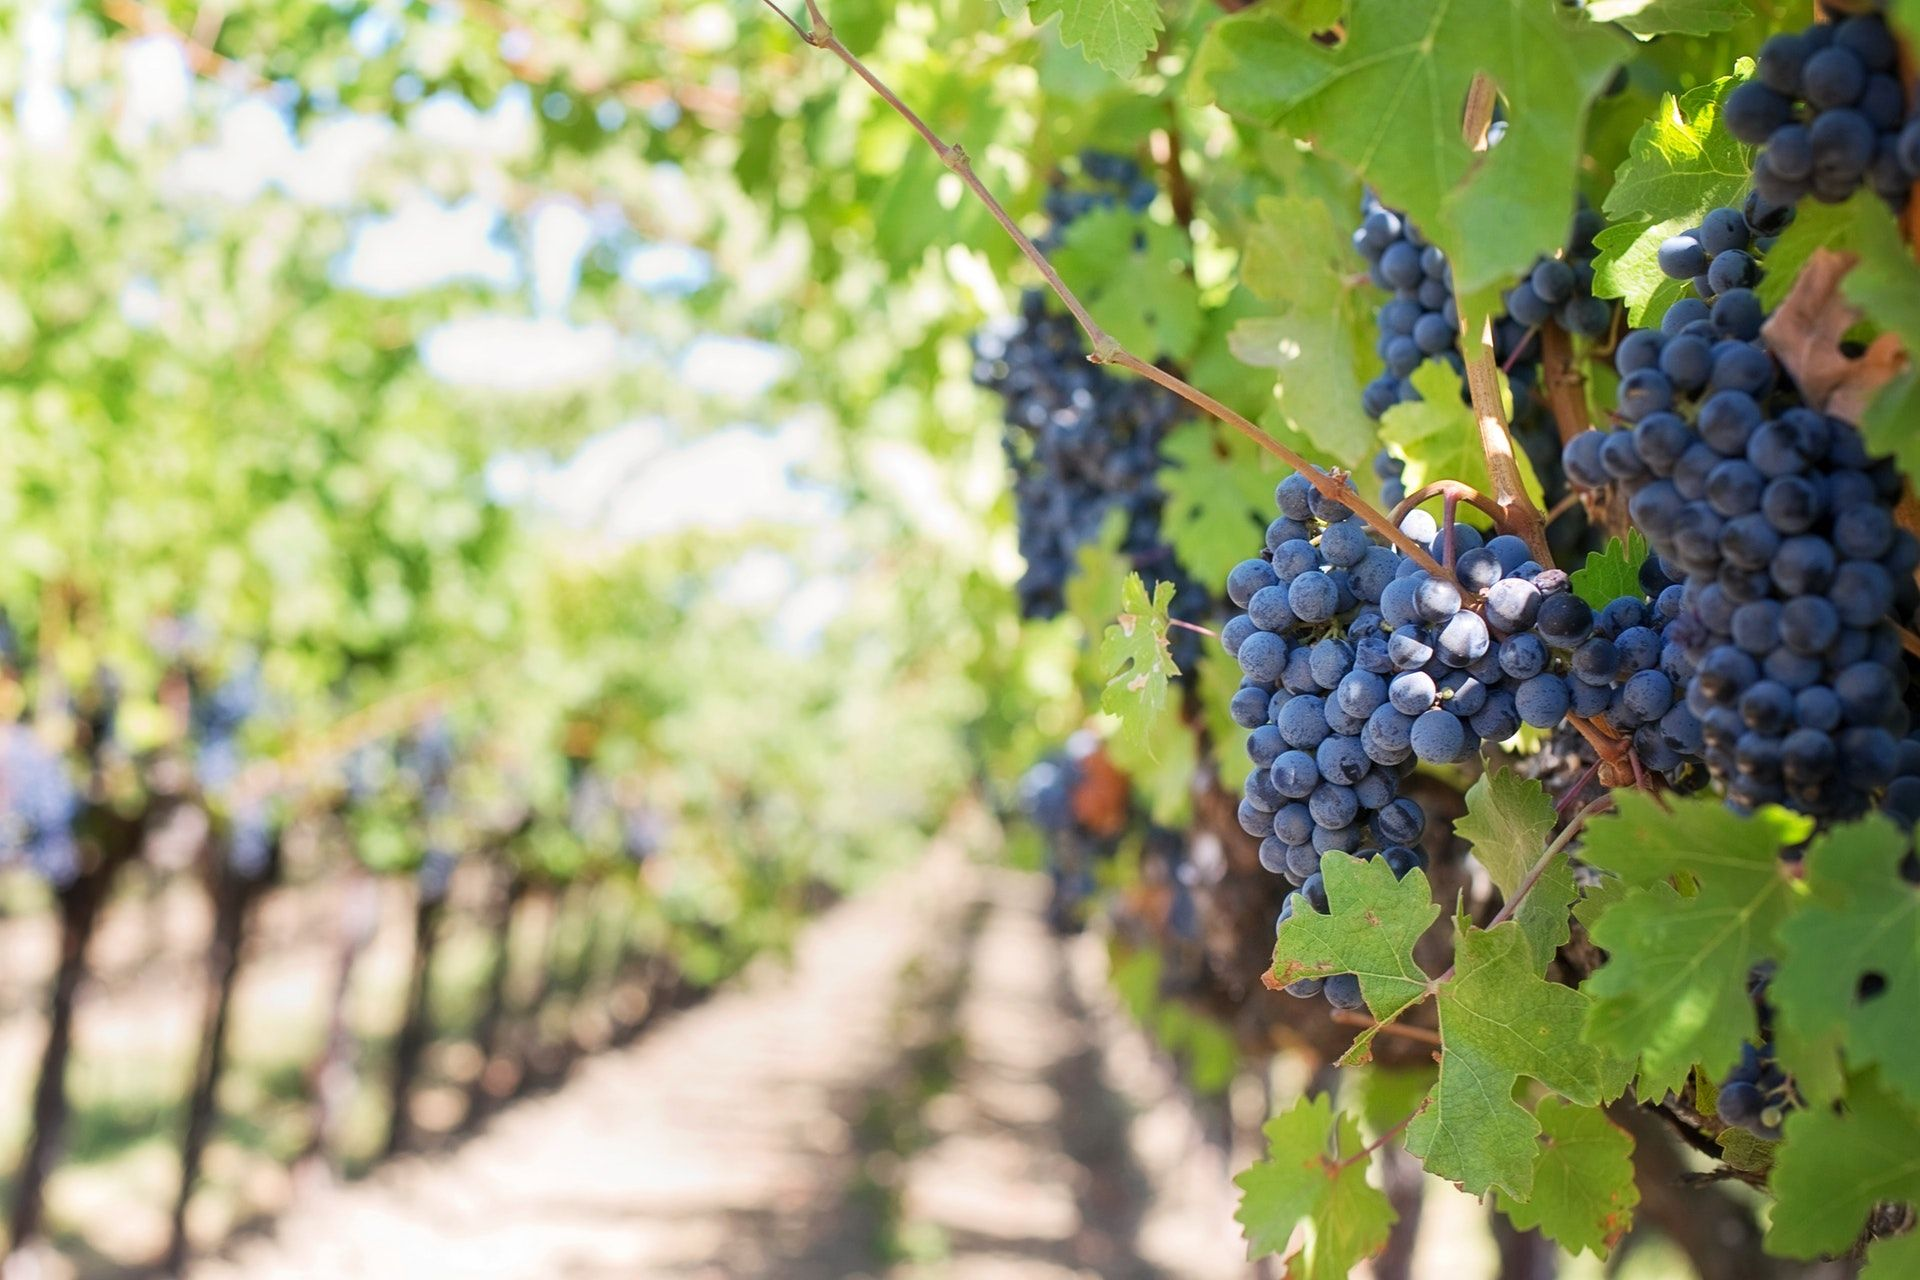 like the grape farming industry, IT staffing faces many changes and challenges